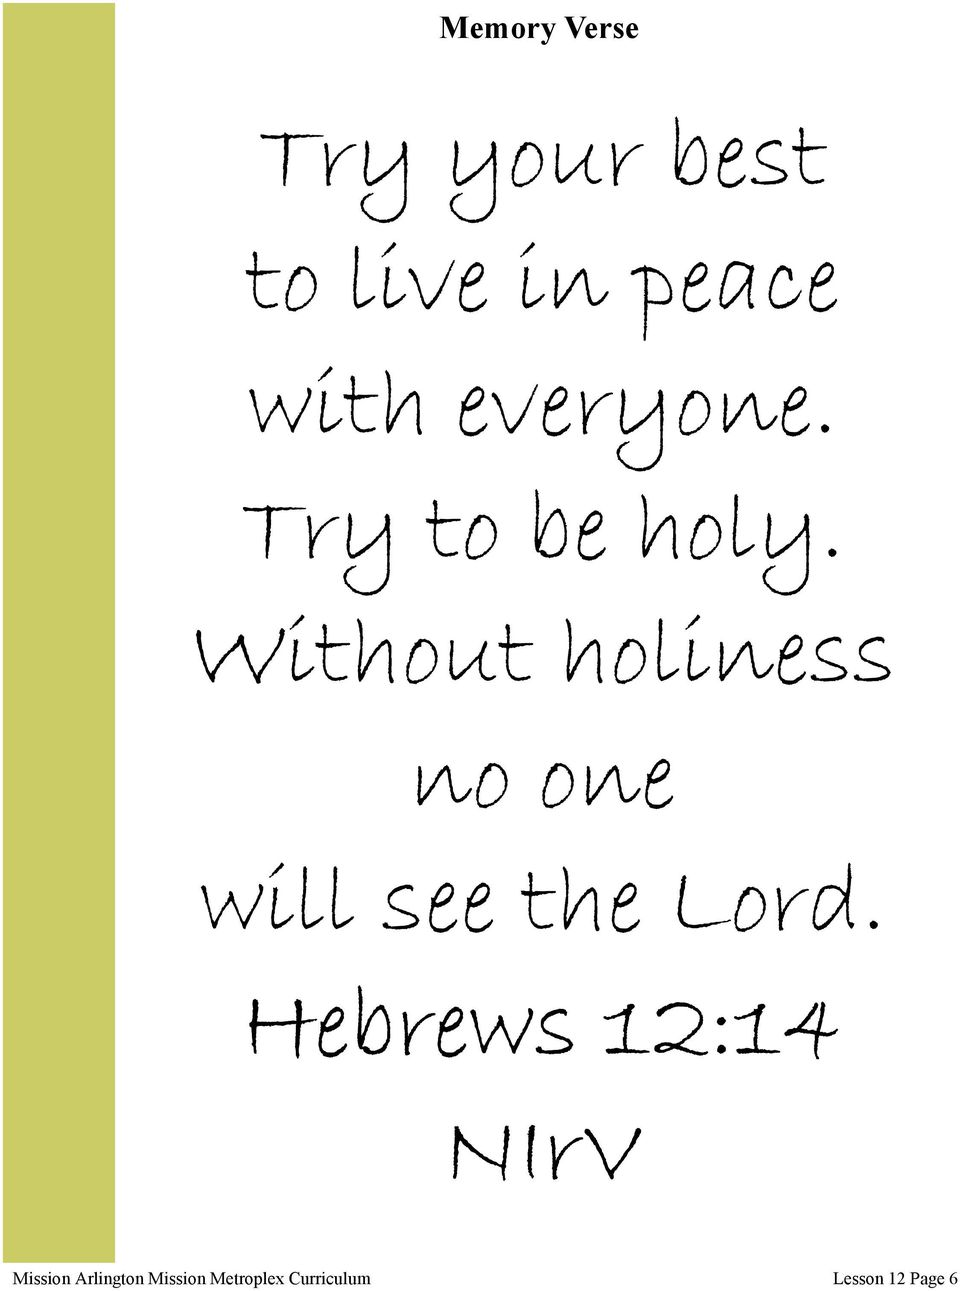 Without holiness no one will see the Lord.